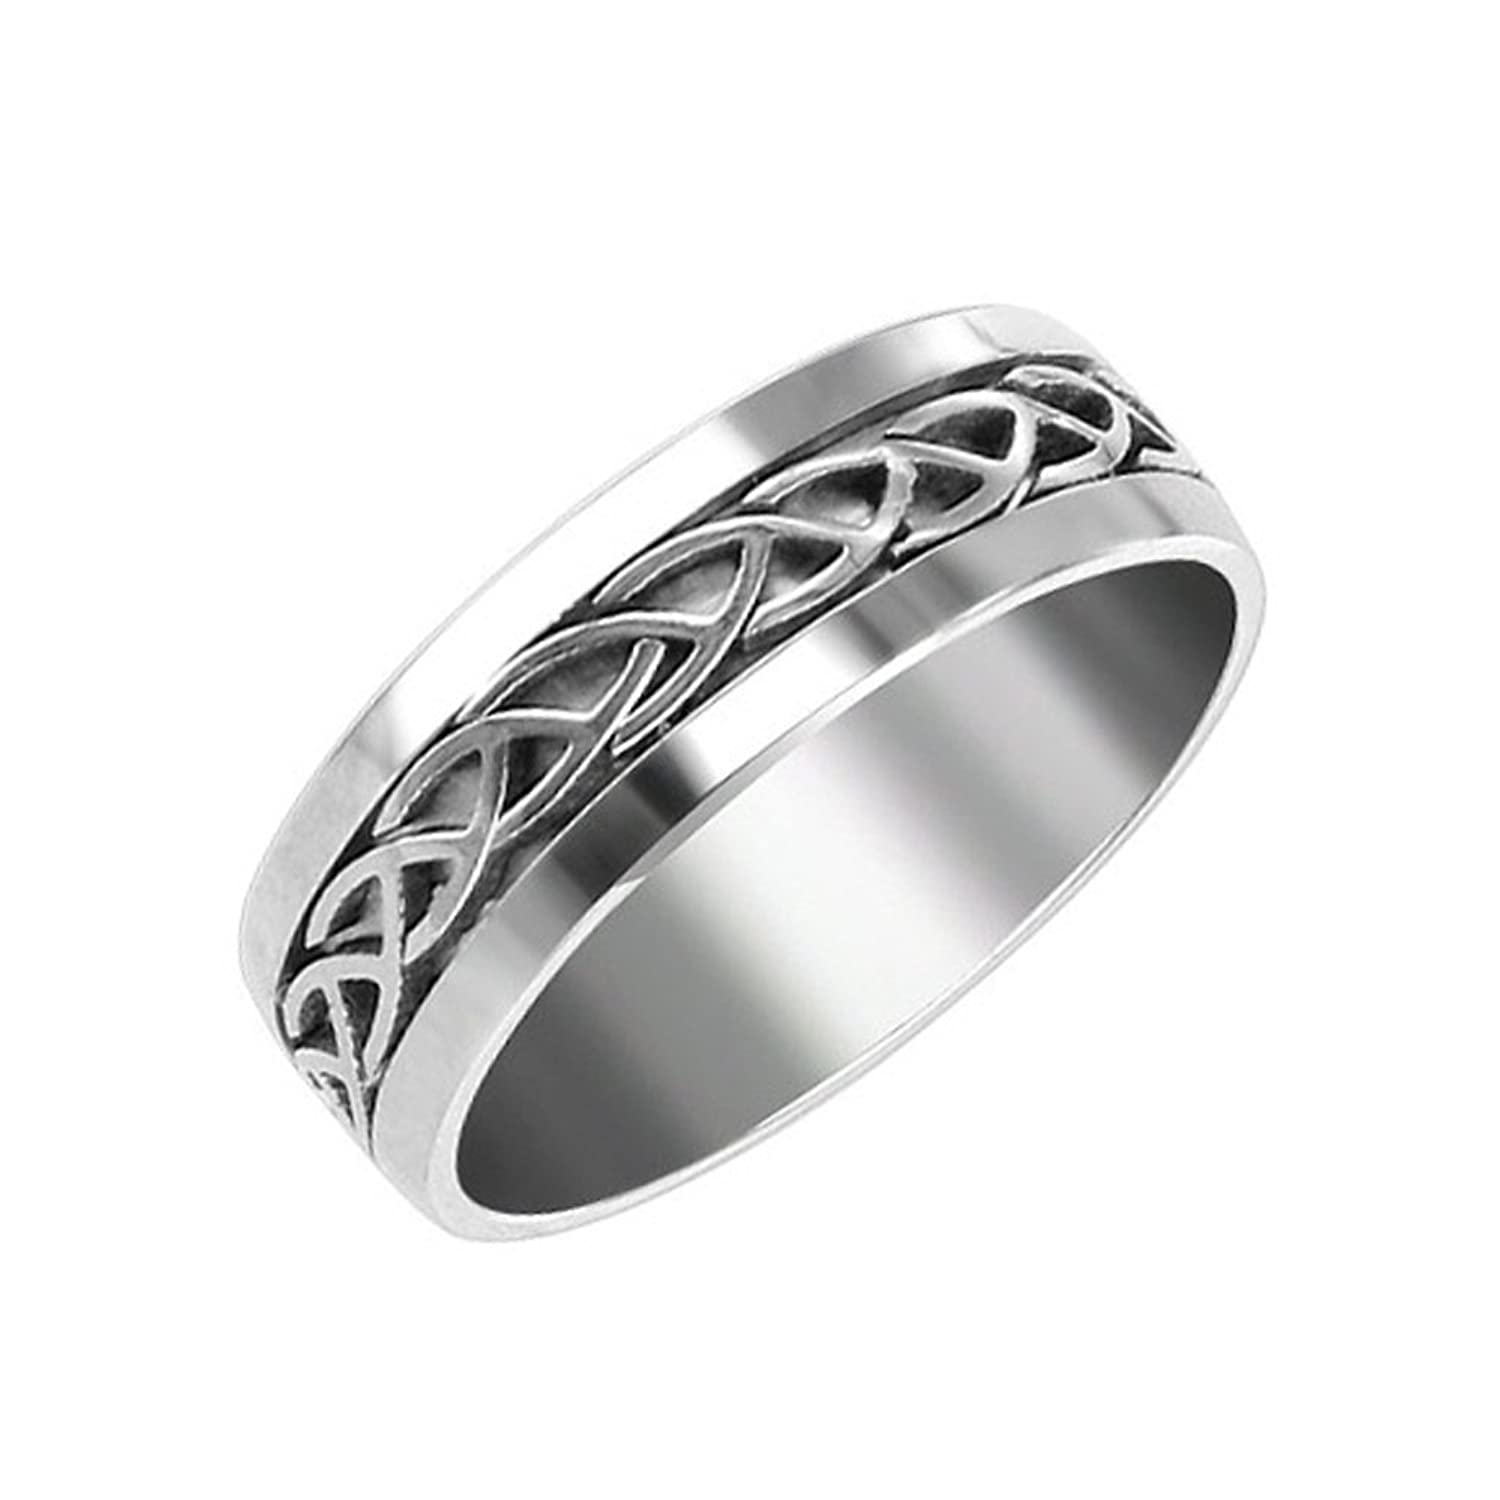 rings my mo soul cara ring gaelic gents white engagement original anam mate